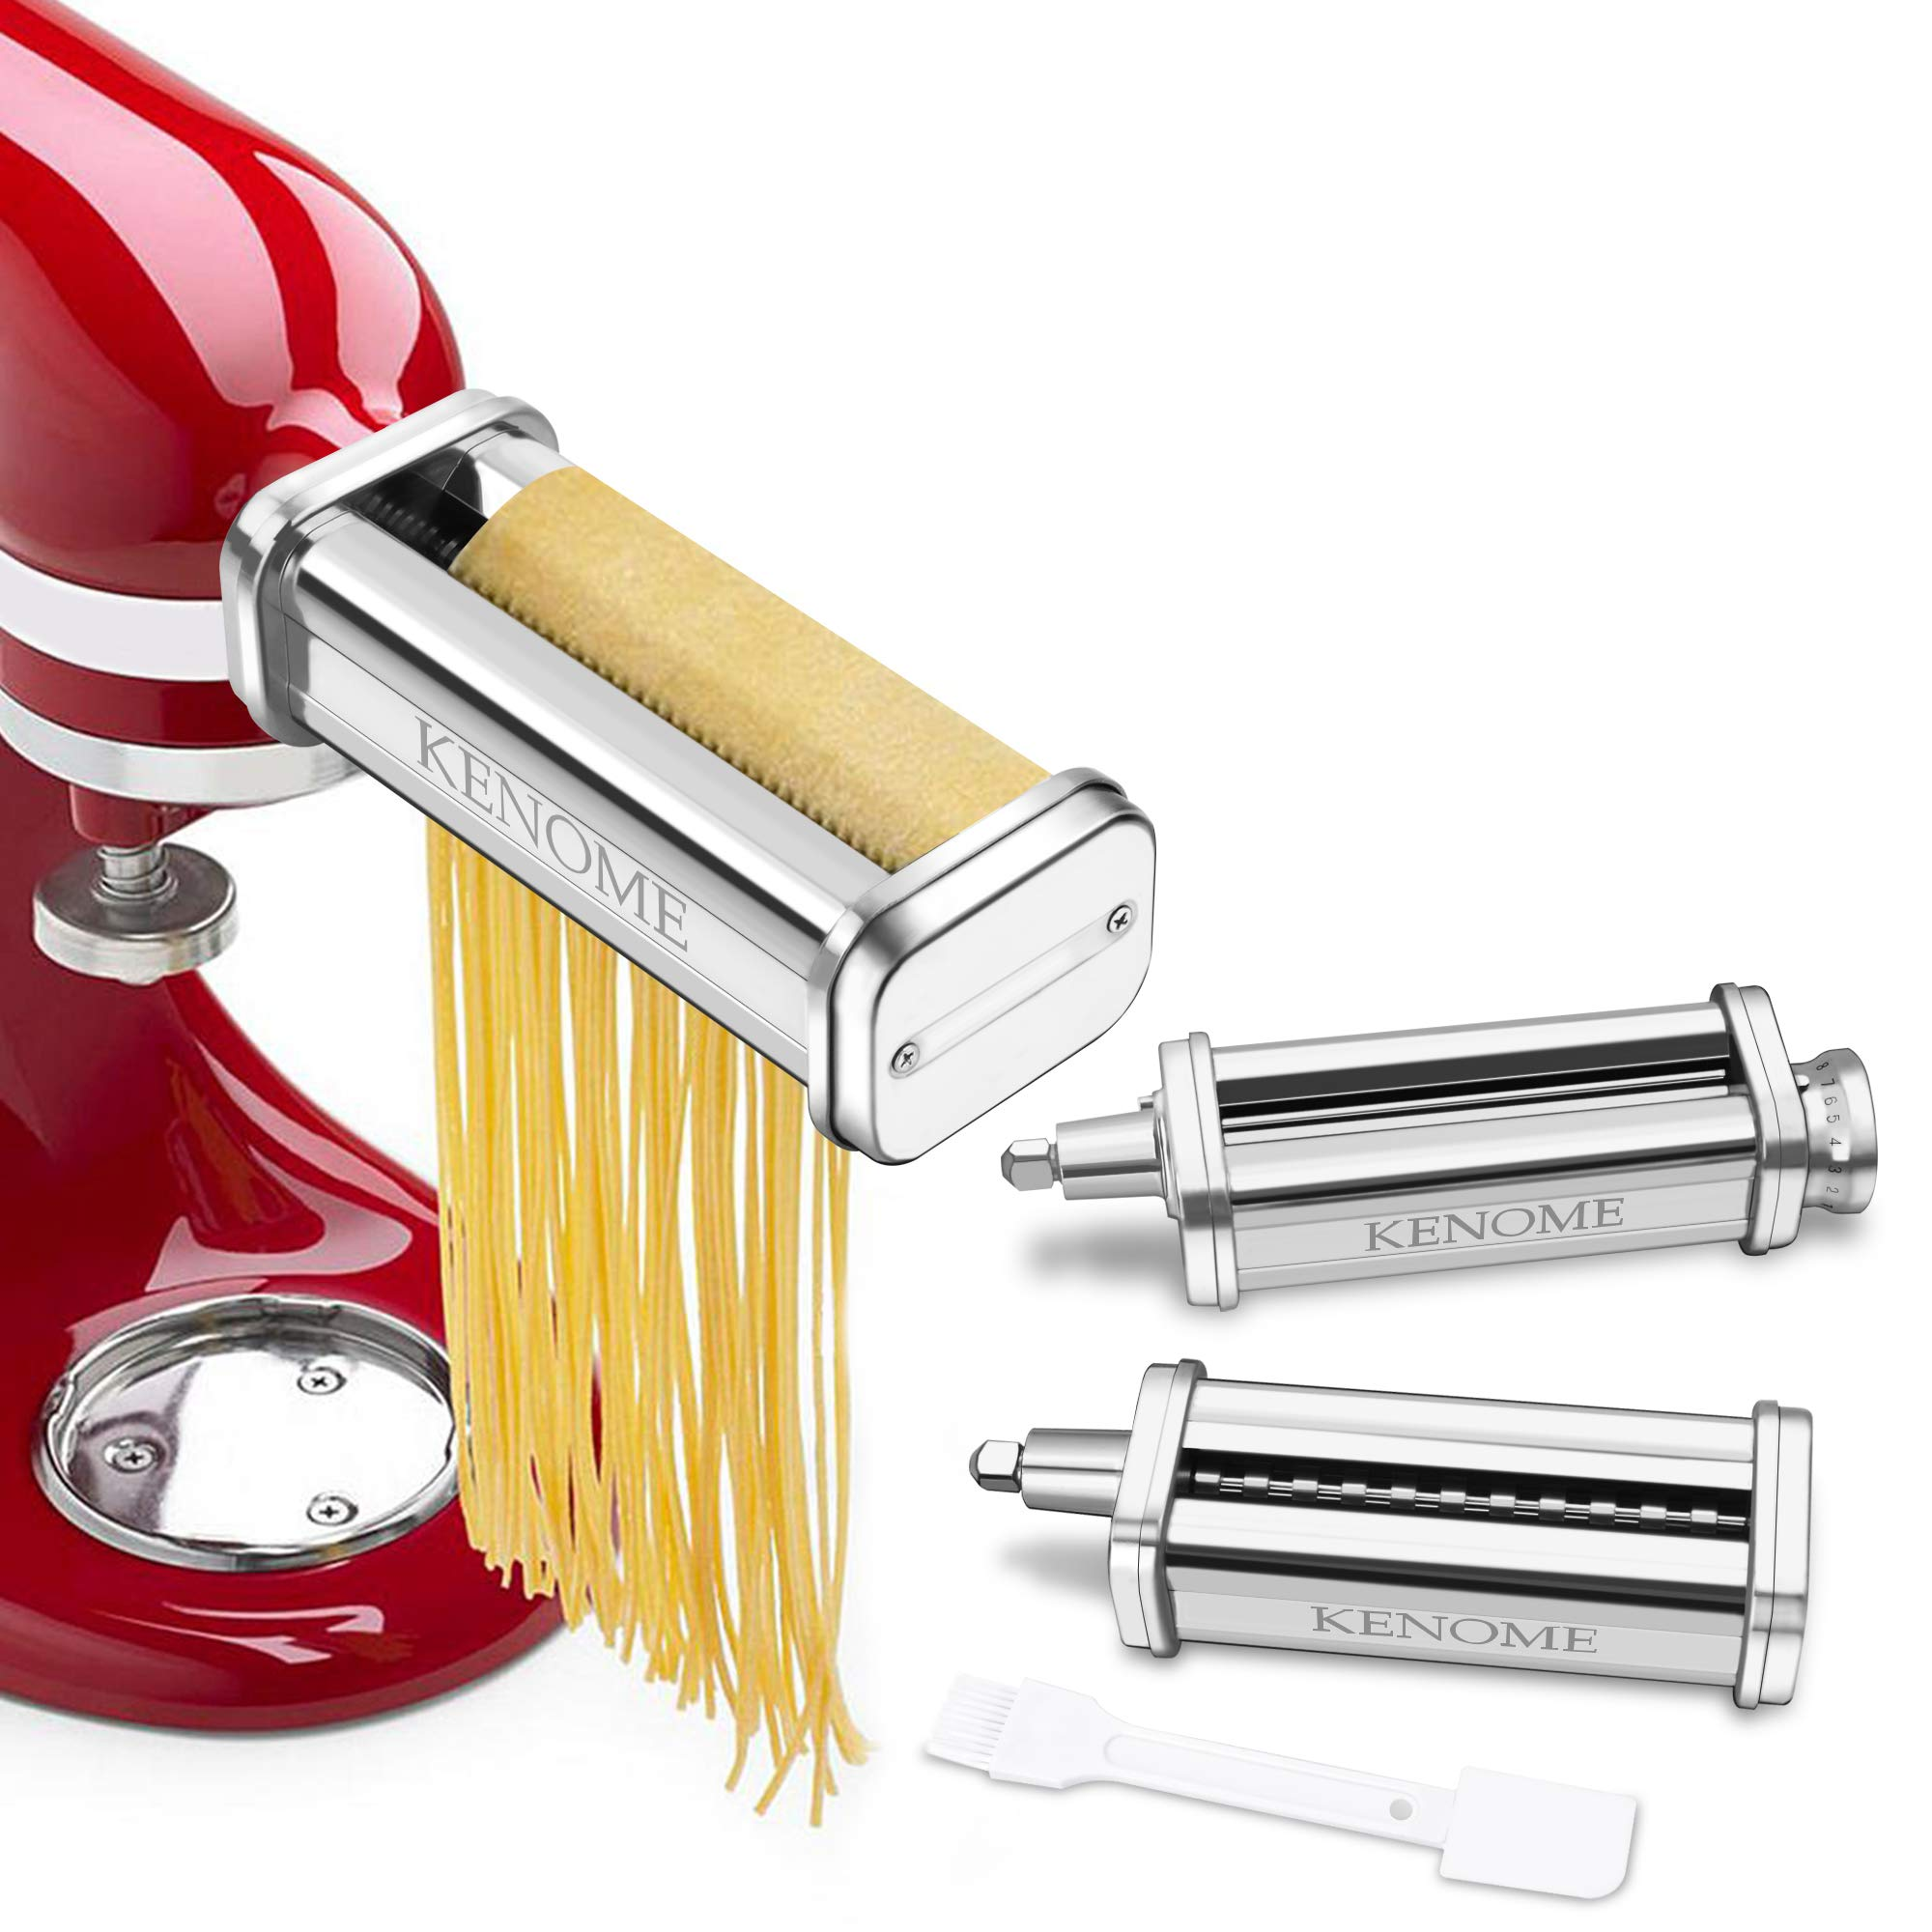 3-Piece Pasta Roller & Cutter Attachment Set for KitchenAid Stand Mixers Included Pasta Sheet Roller, Spaghetti Cutter, Fettuccine Cutter by KENOME